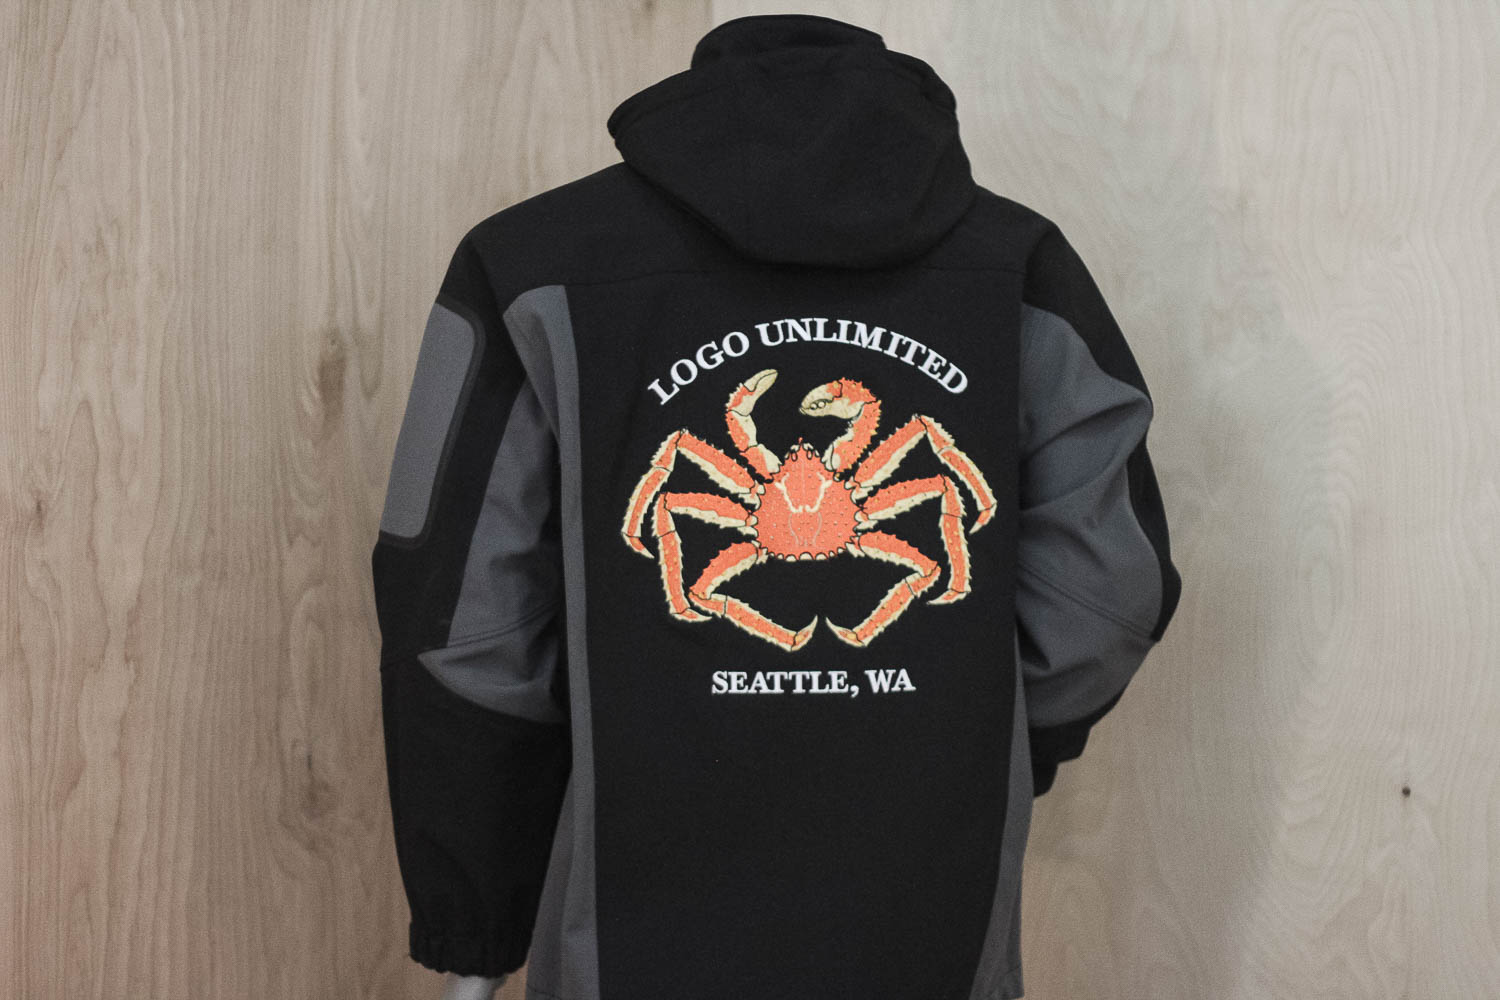 Full back XL embroidery on Soft shell Jacket